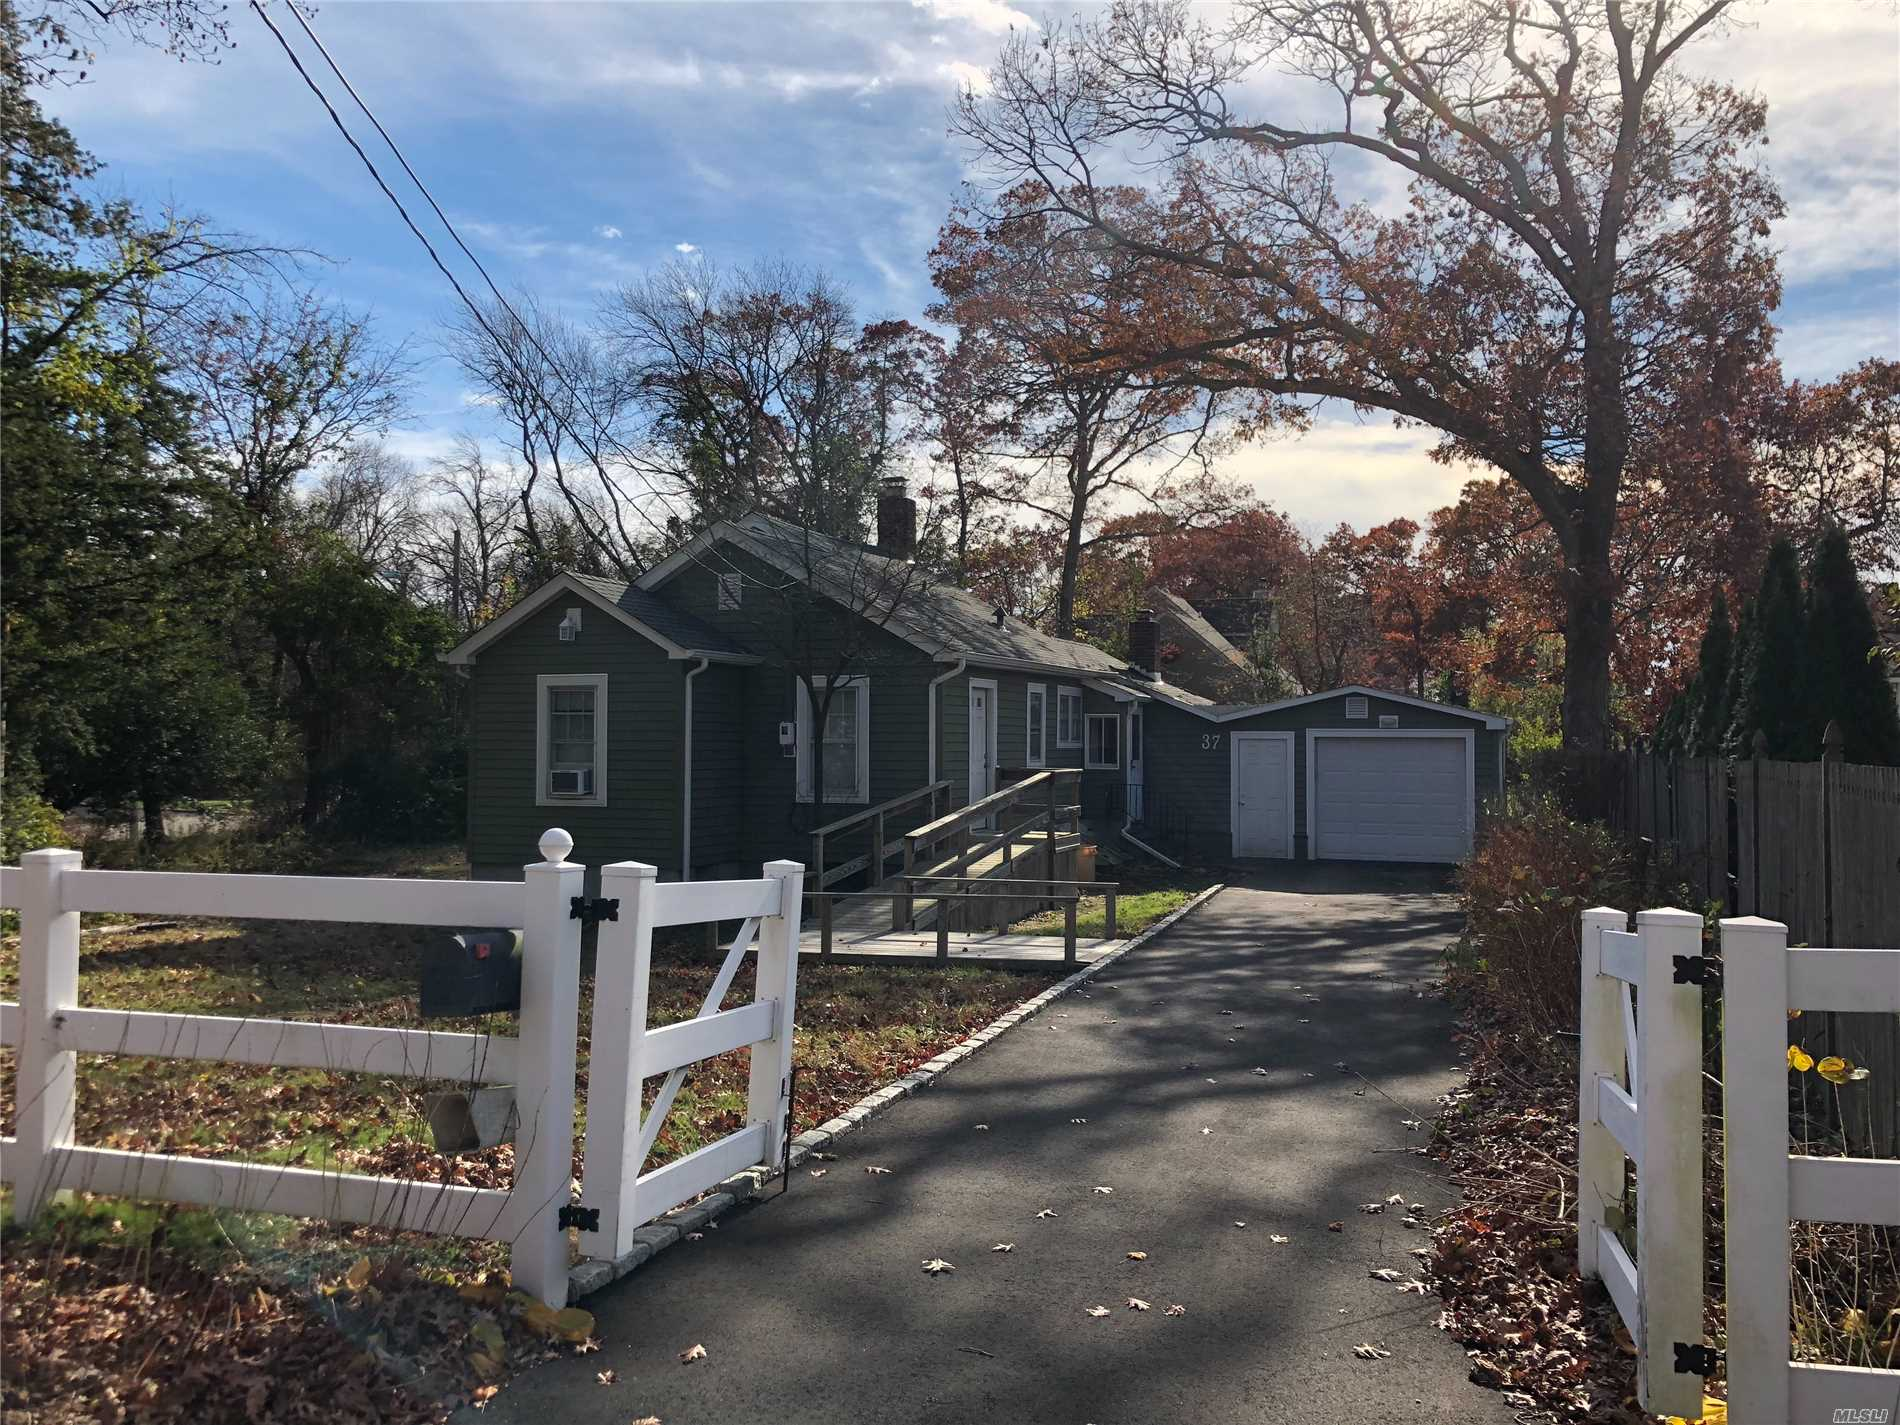 Full Home Rental In Beautiful West Islip, Home On A Double Cul-De-Sac With Minimal Traffic. Find Peace And Quite In This 2 Bedroom, 1 Bathroom, With A Handicap Accessible Entrance. Private Driveway For Parking. Tenant Responsible For Utilities. 6 Month Rental. All Pets Welcome, Smoking Permitted. No Access To Garage.